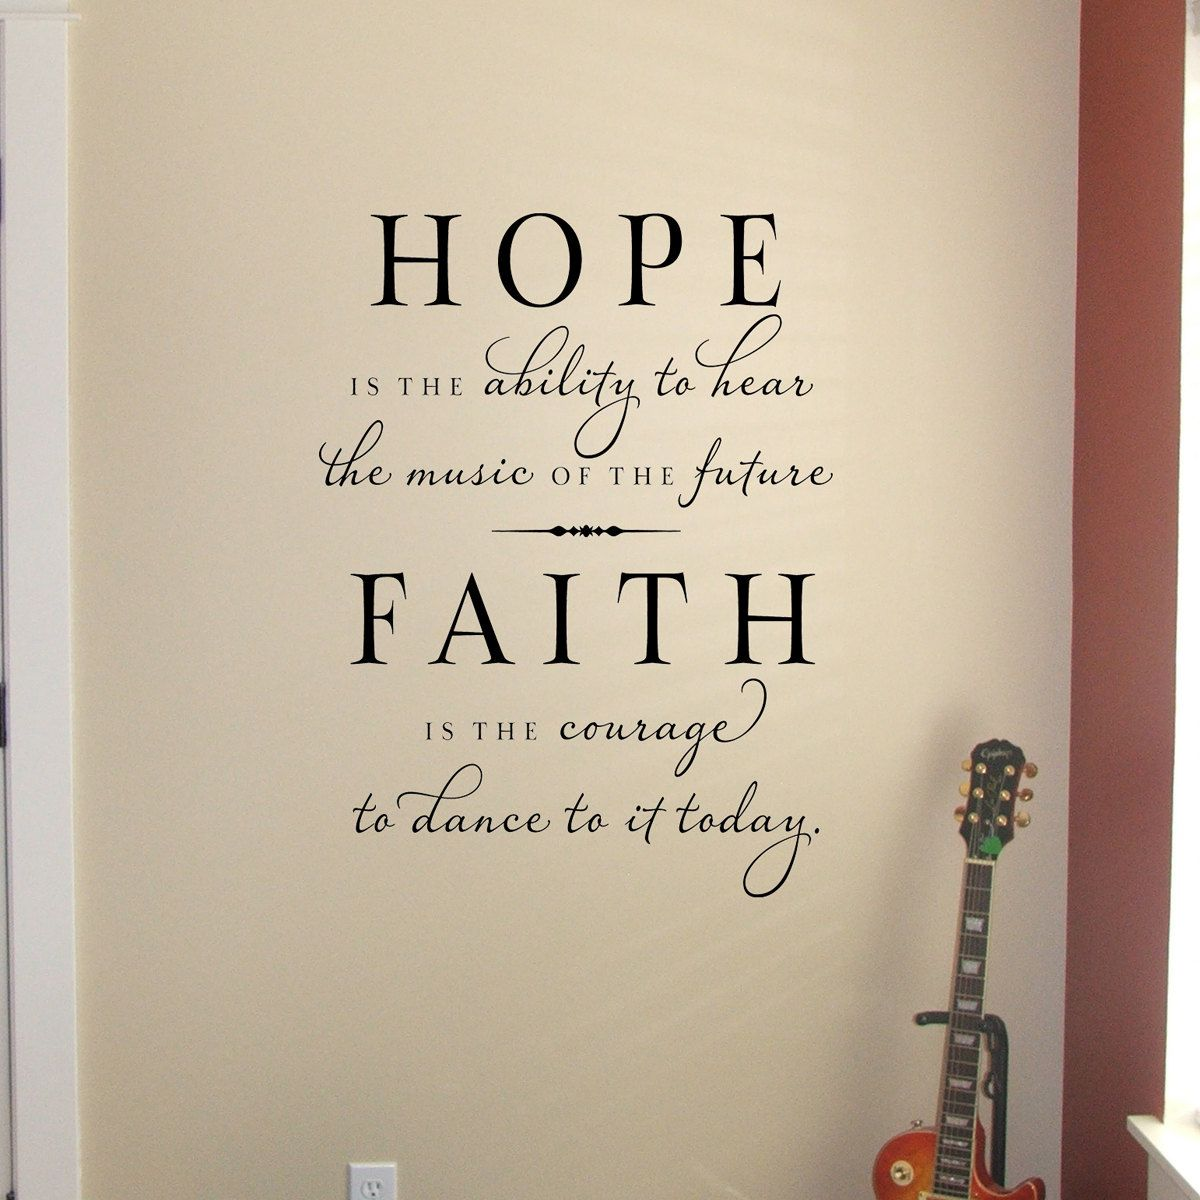 hope quotes and sayings - photo #6